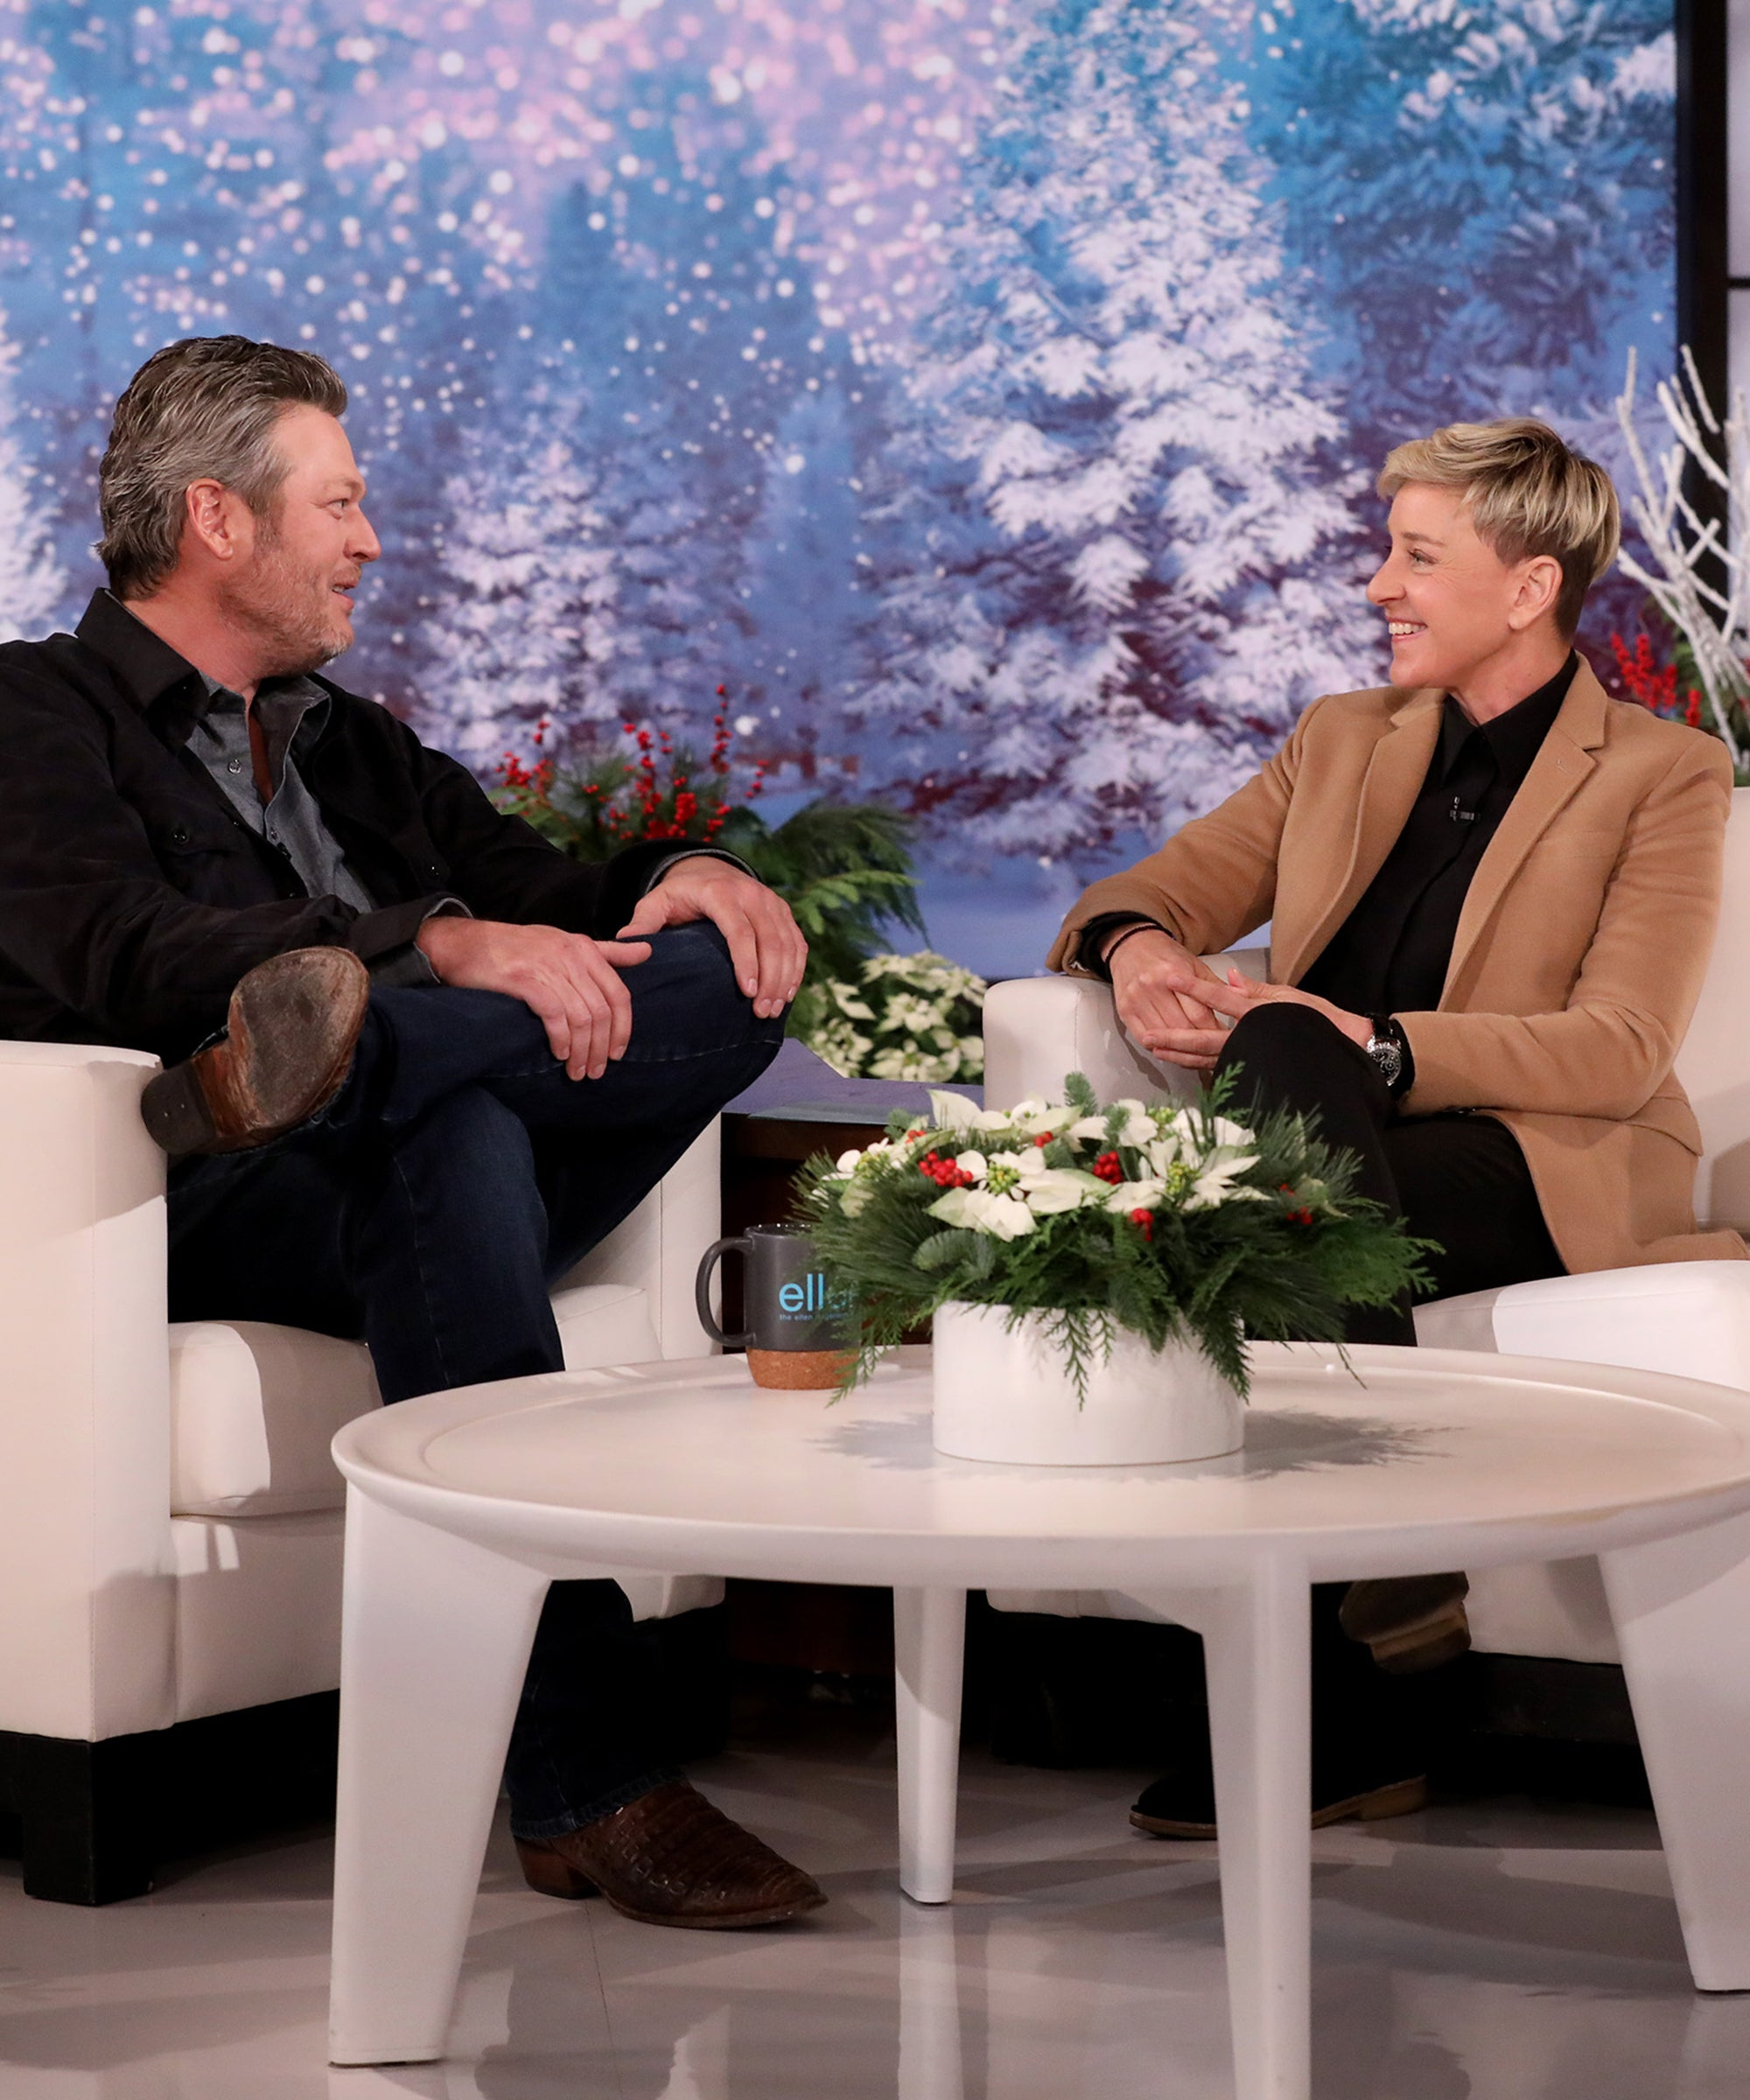 Blake Shelton Is The Latest To Awkwardly Call Out Ellen DeGeneres On Her Show